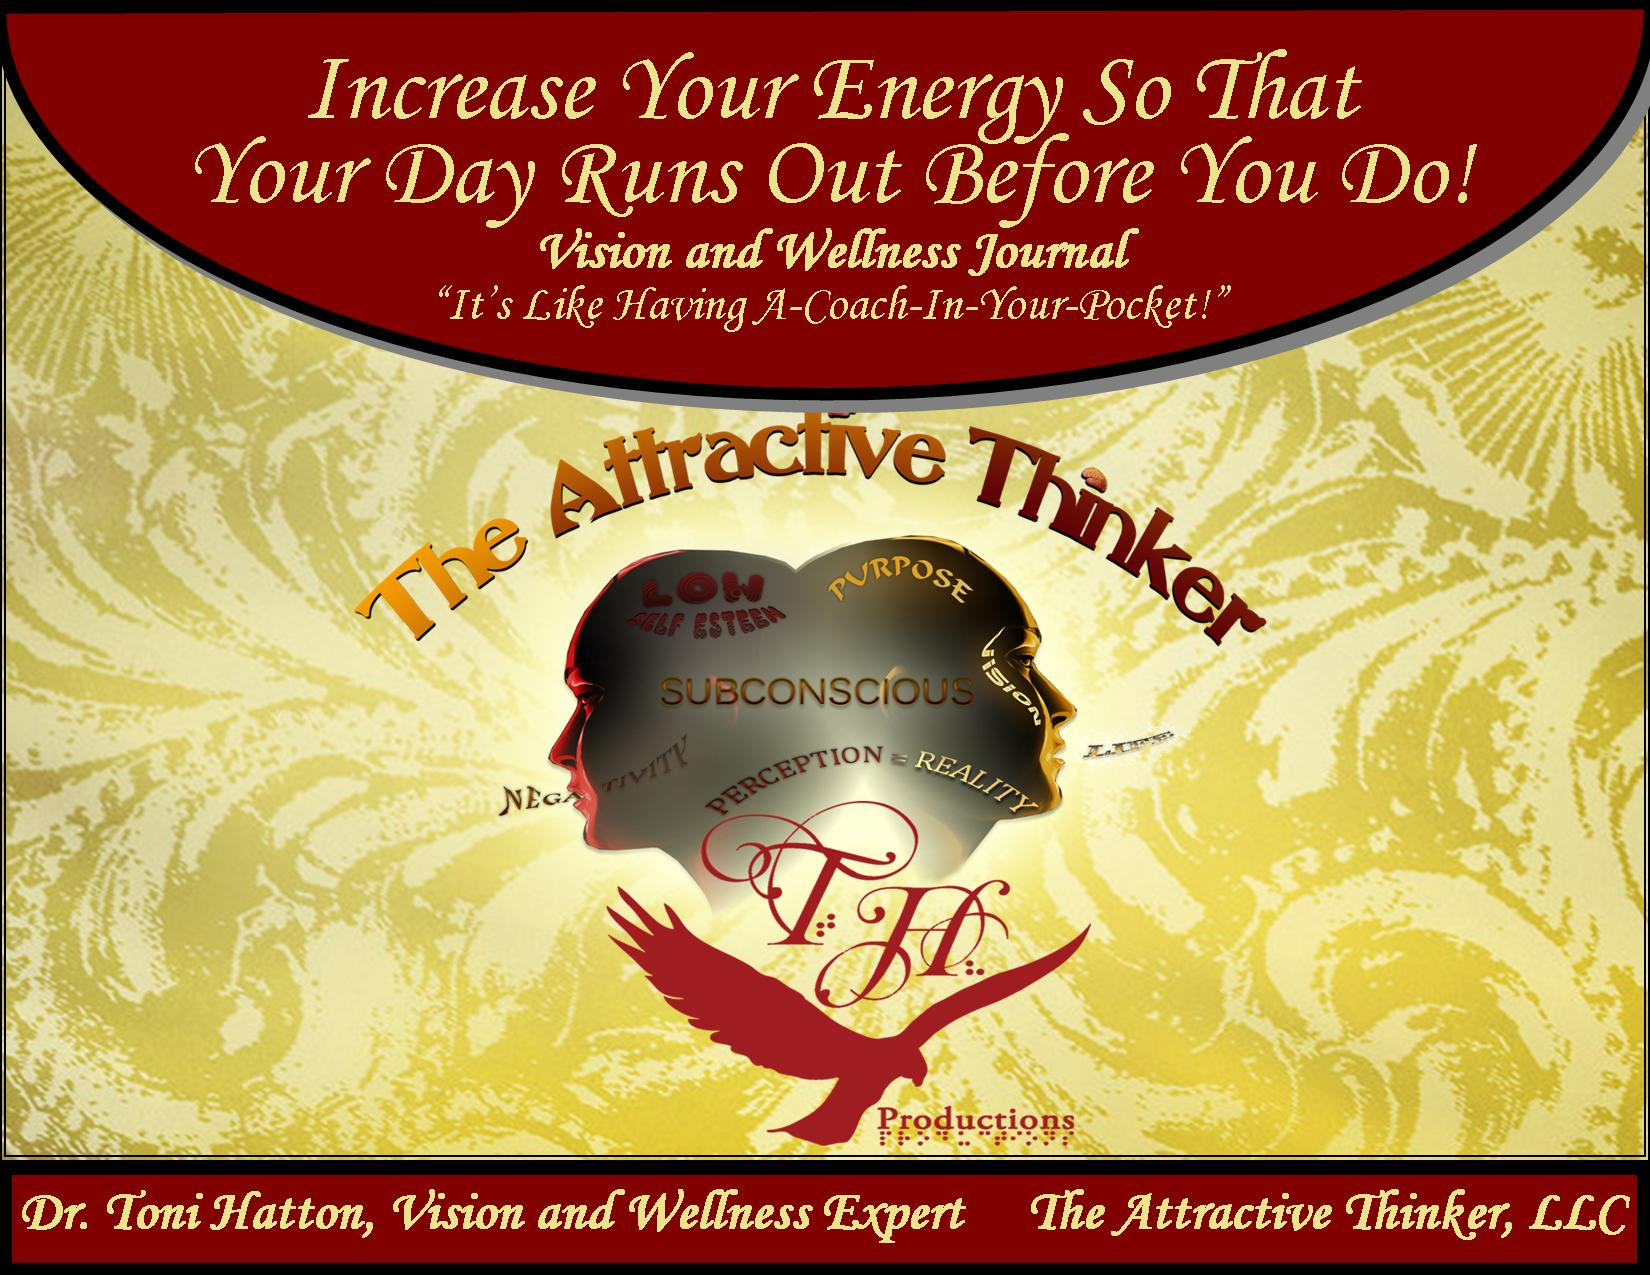 Increase Your Energy Vision and Wellness Journal Cover